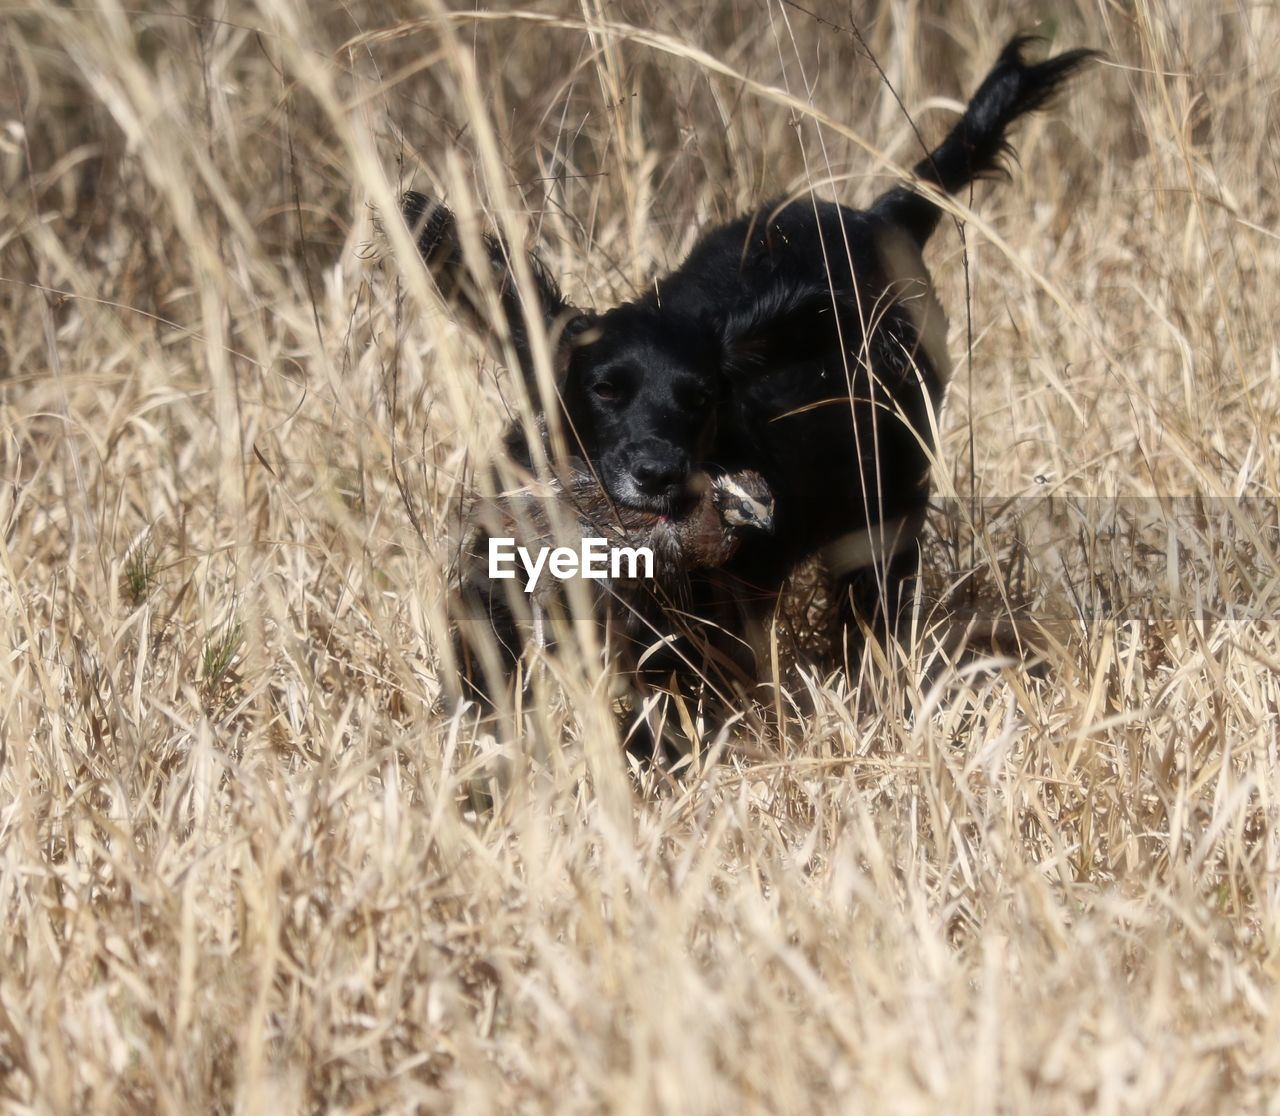 animal themes, one animal, grass, mammal, pets, dog, domestic animals, field, no people, outdoors, day, nature